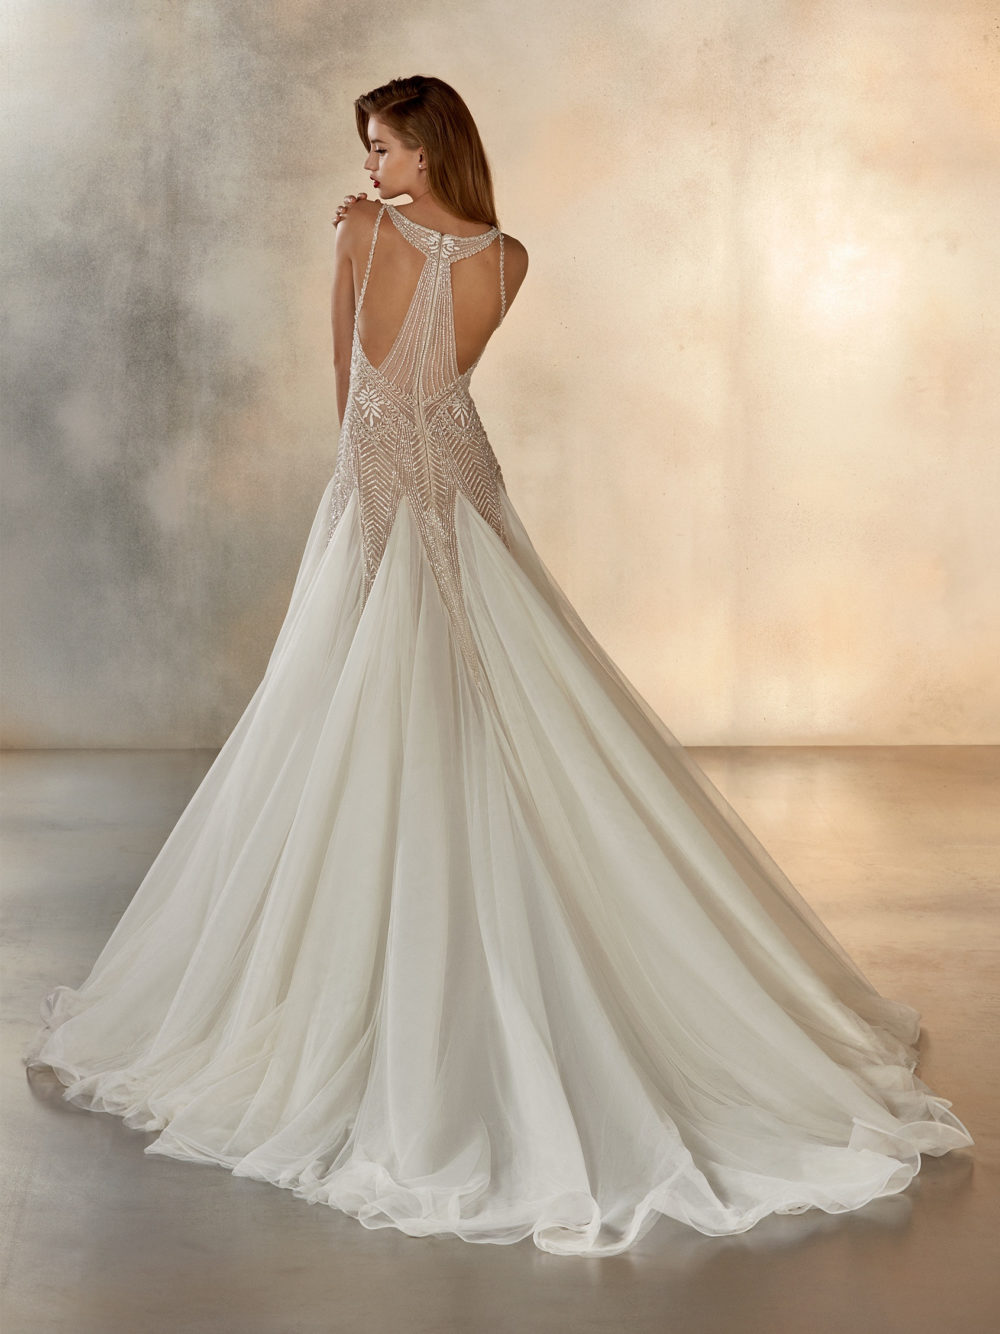 Pronovias Star Dreaming Wedding Gown Dress 2020 Atelier Collection Full Back